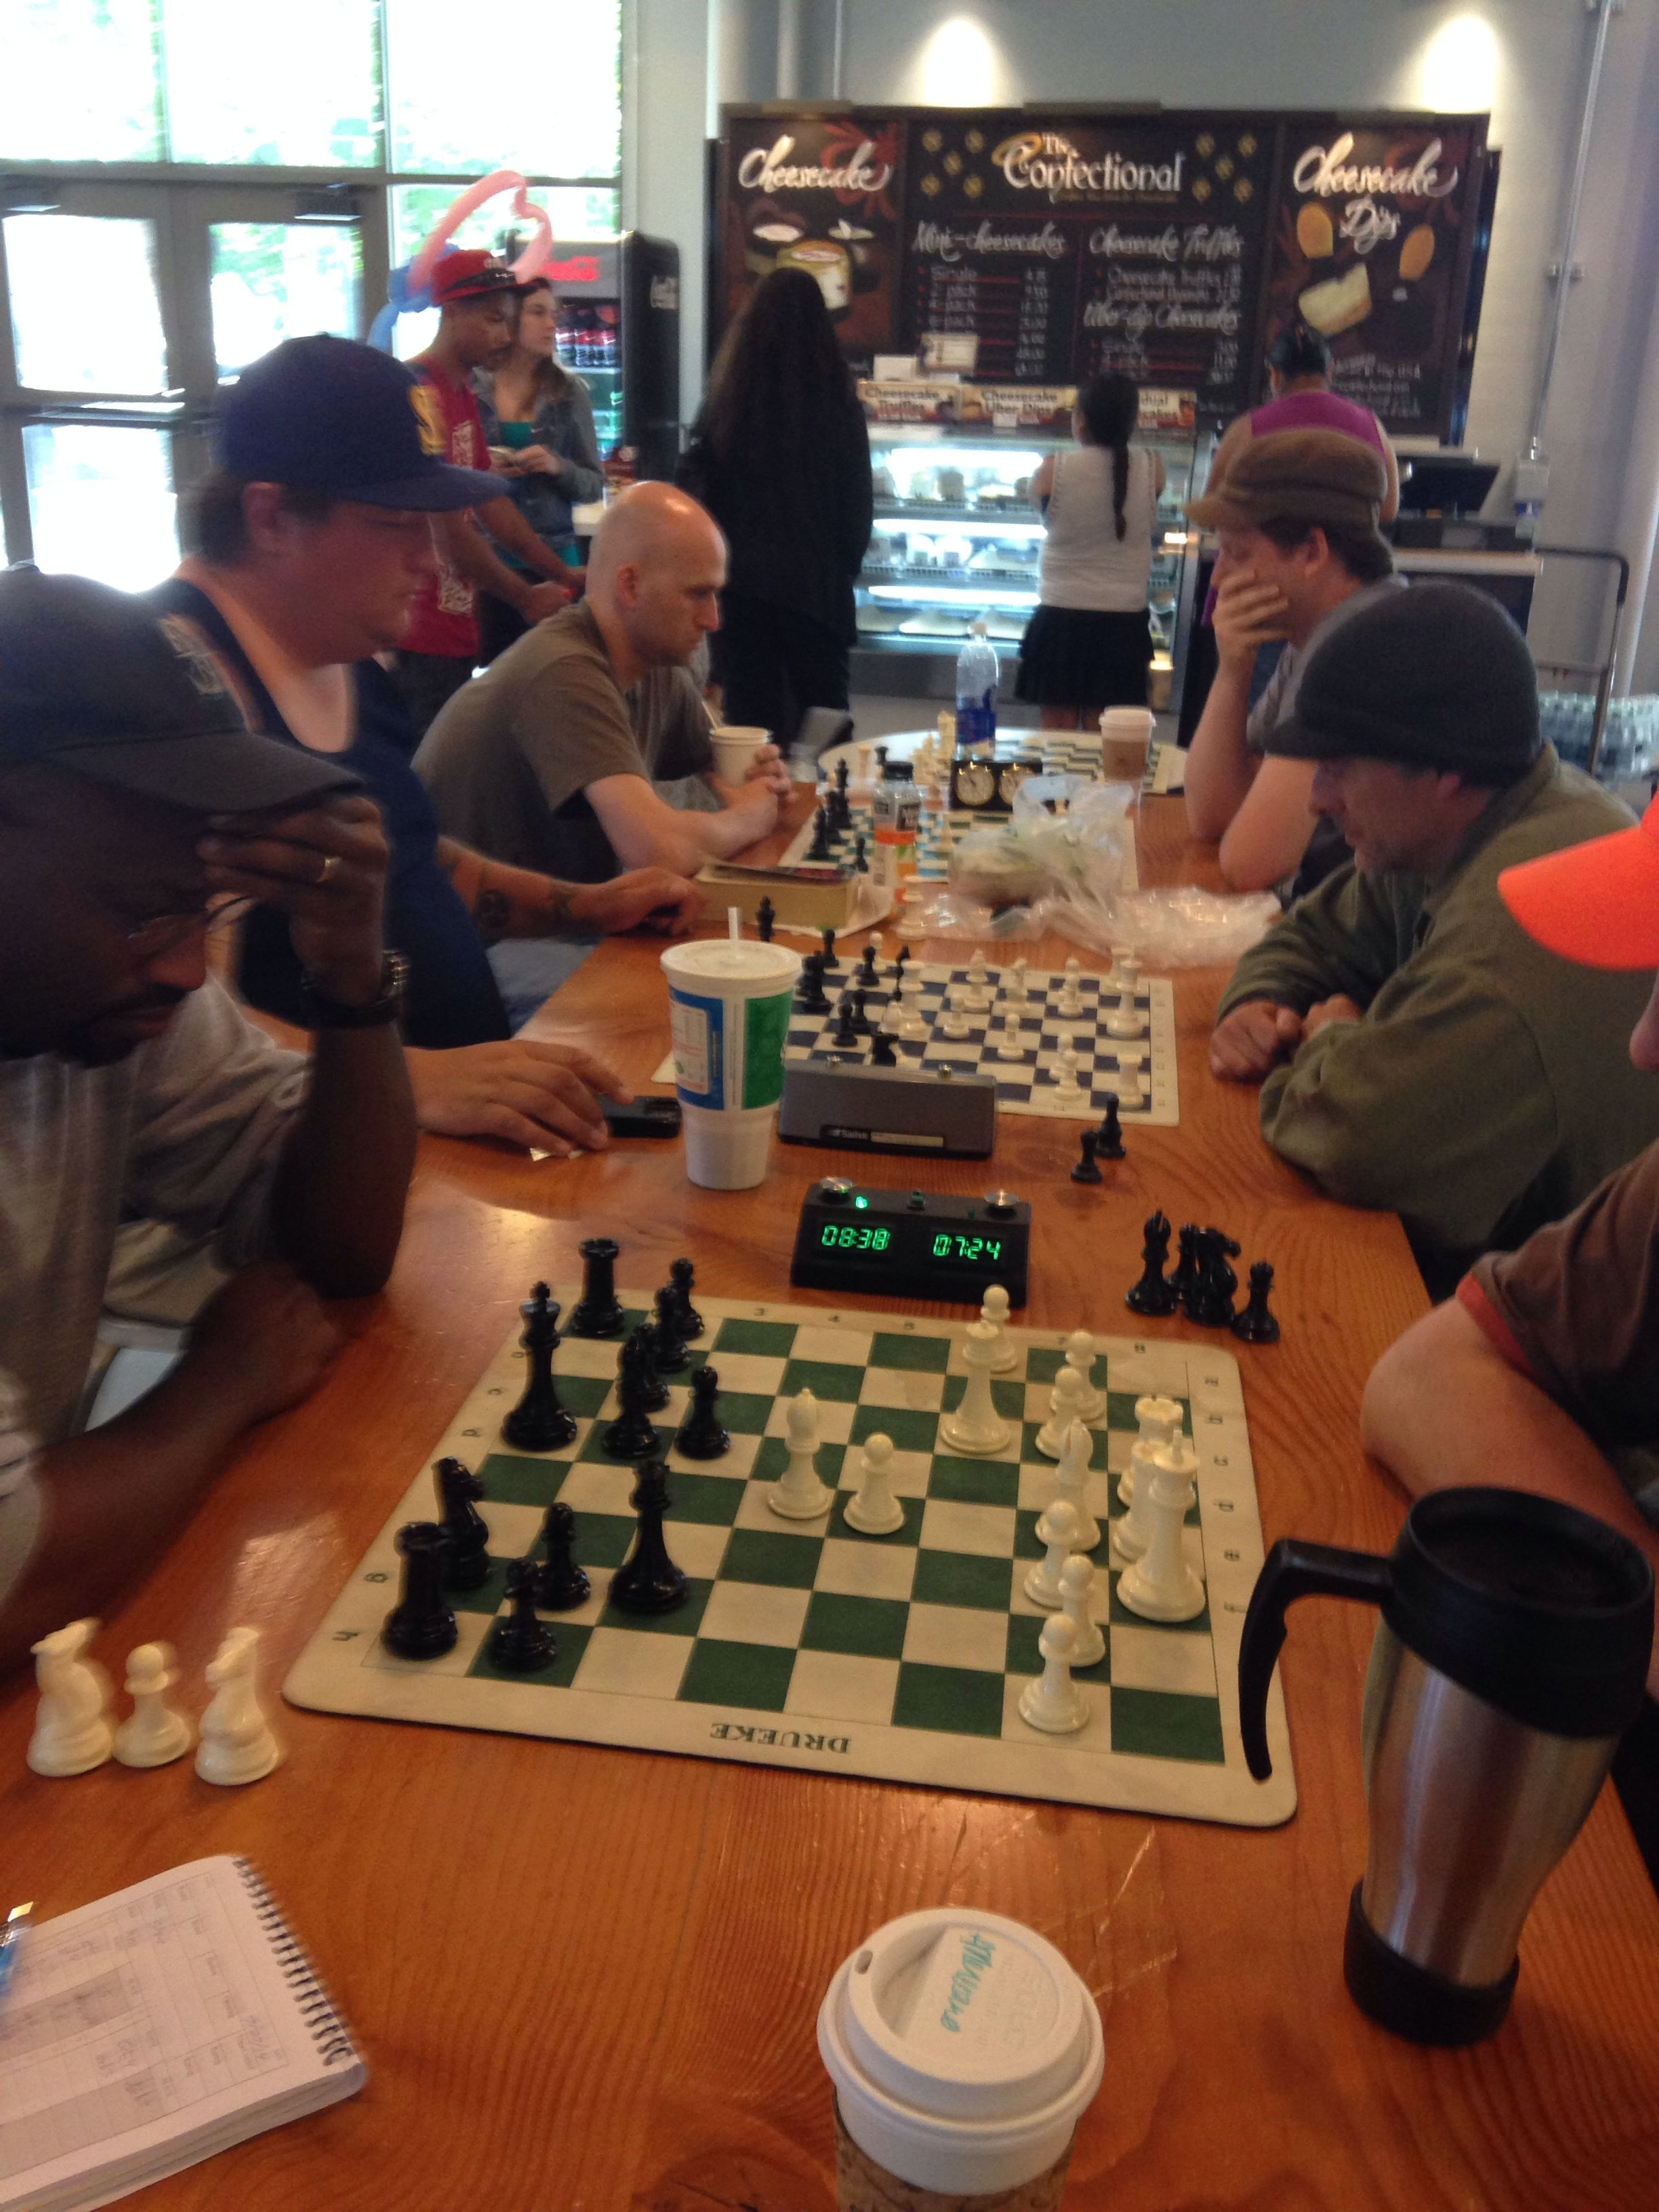 The Seattle Chess Meetup